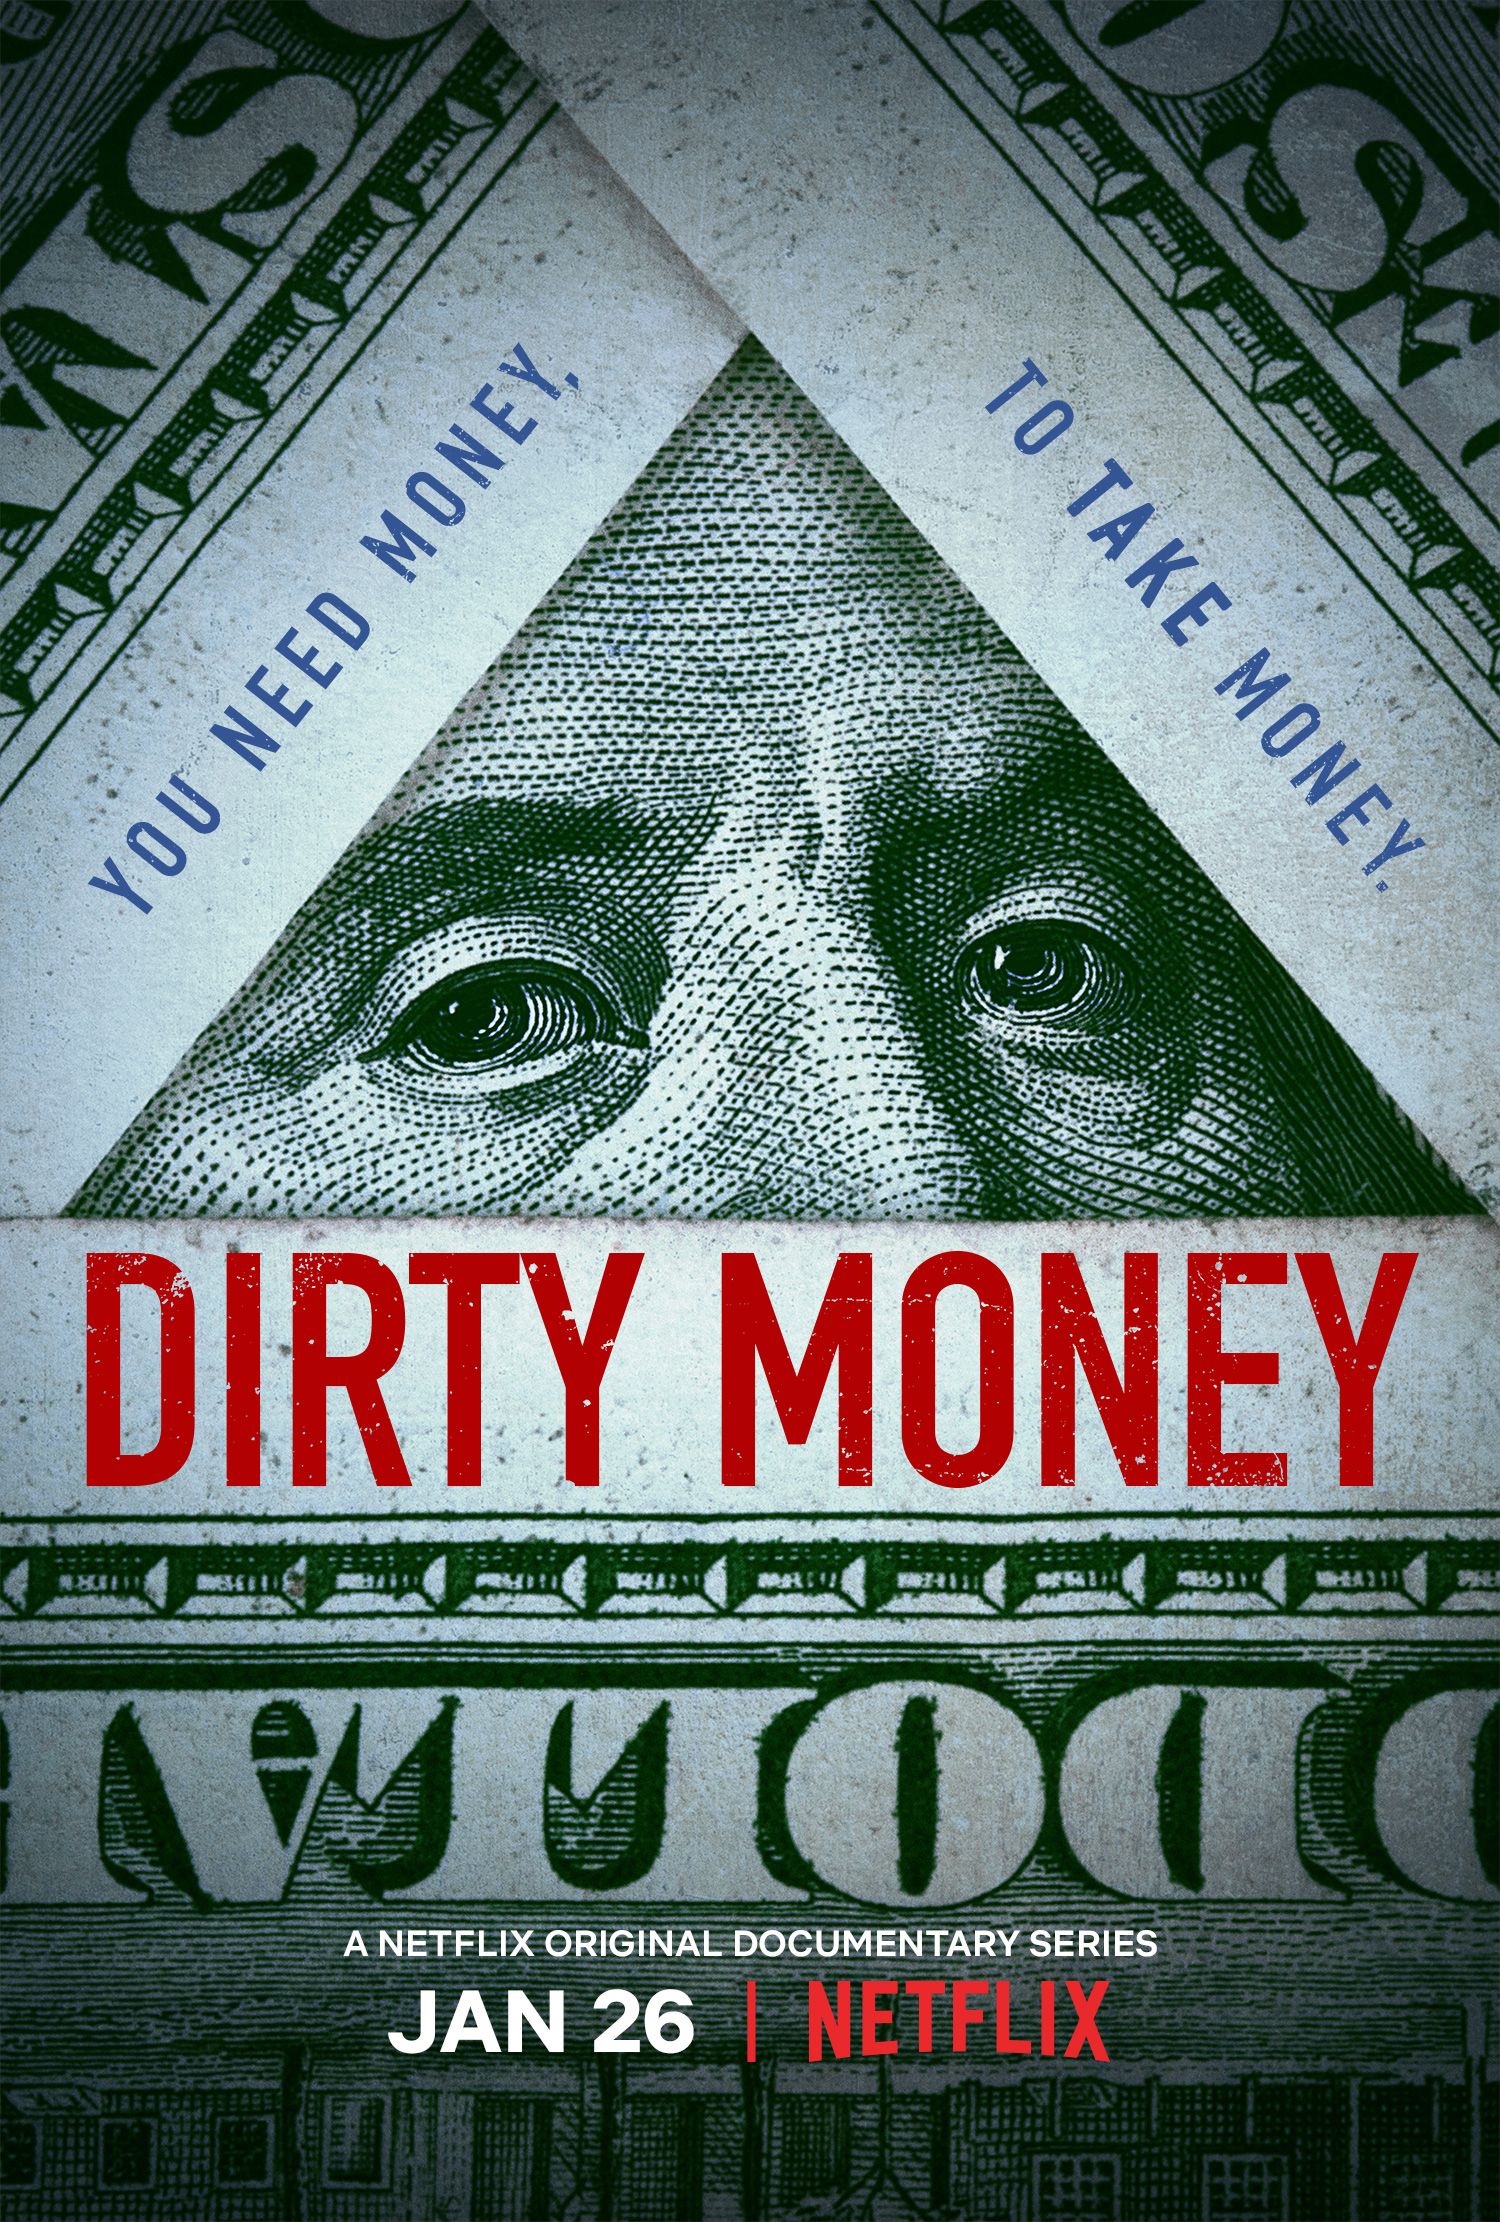 """Dirty Money: Drug Short"" - Netflix, Season 1, Episode 3 (2018)"